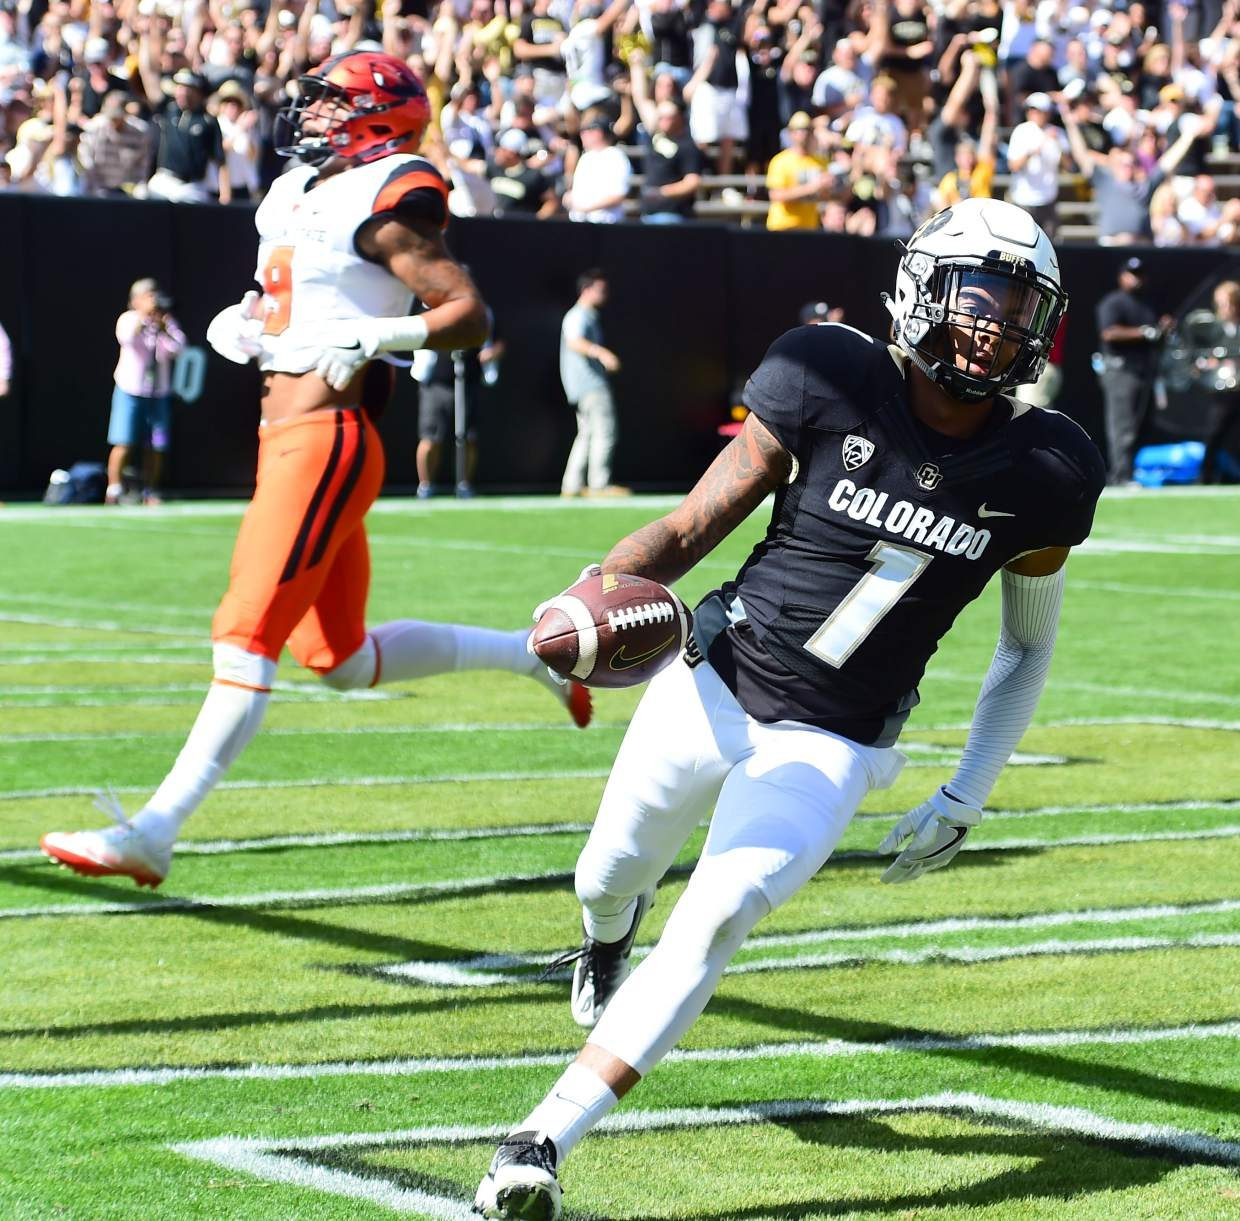 Colorado's Shay Fields scores a touchdown past Oregon State's Devin Chappell during an NCAA college football game Saturday, Oct. 1, 2016, in Boulder, Colo. (Cliff Grassmick/Daily Camera via AP)